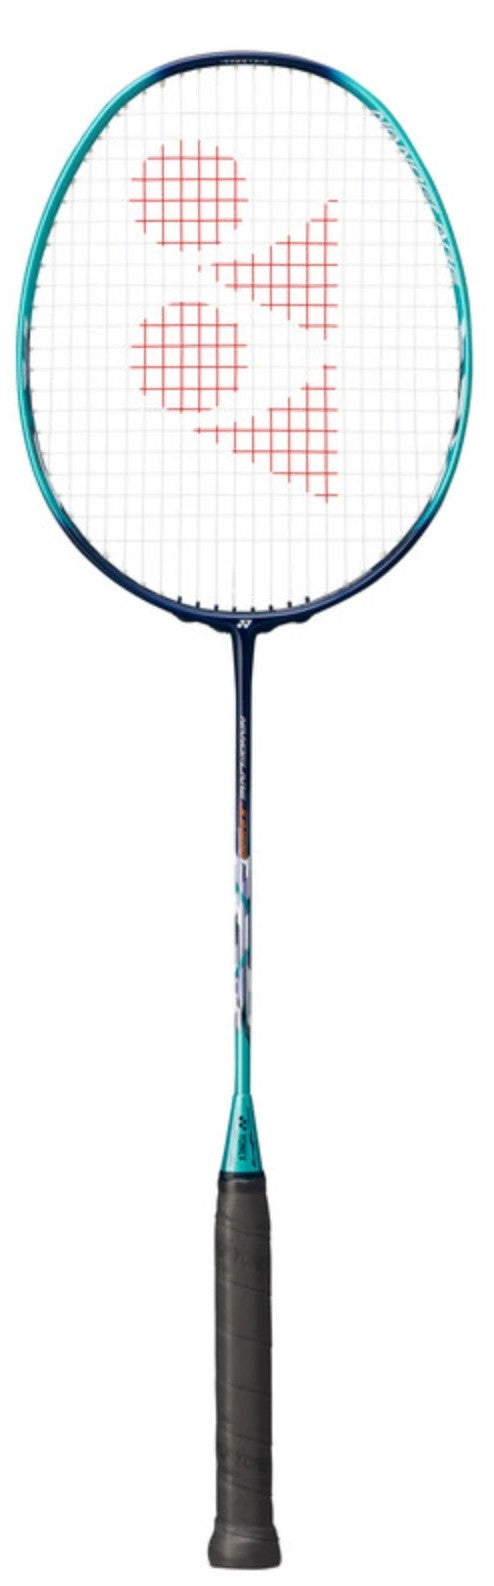 Yonex Nanoflare Junior badminton racket for toddlers - Sports Arena